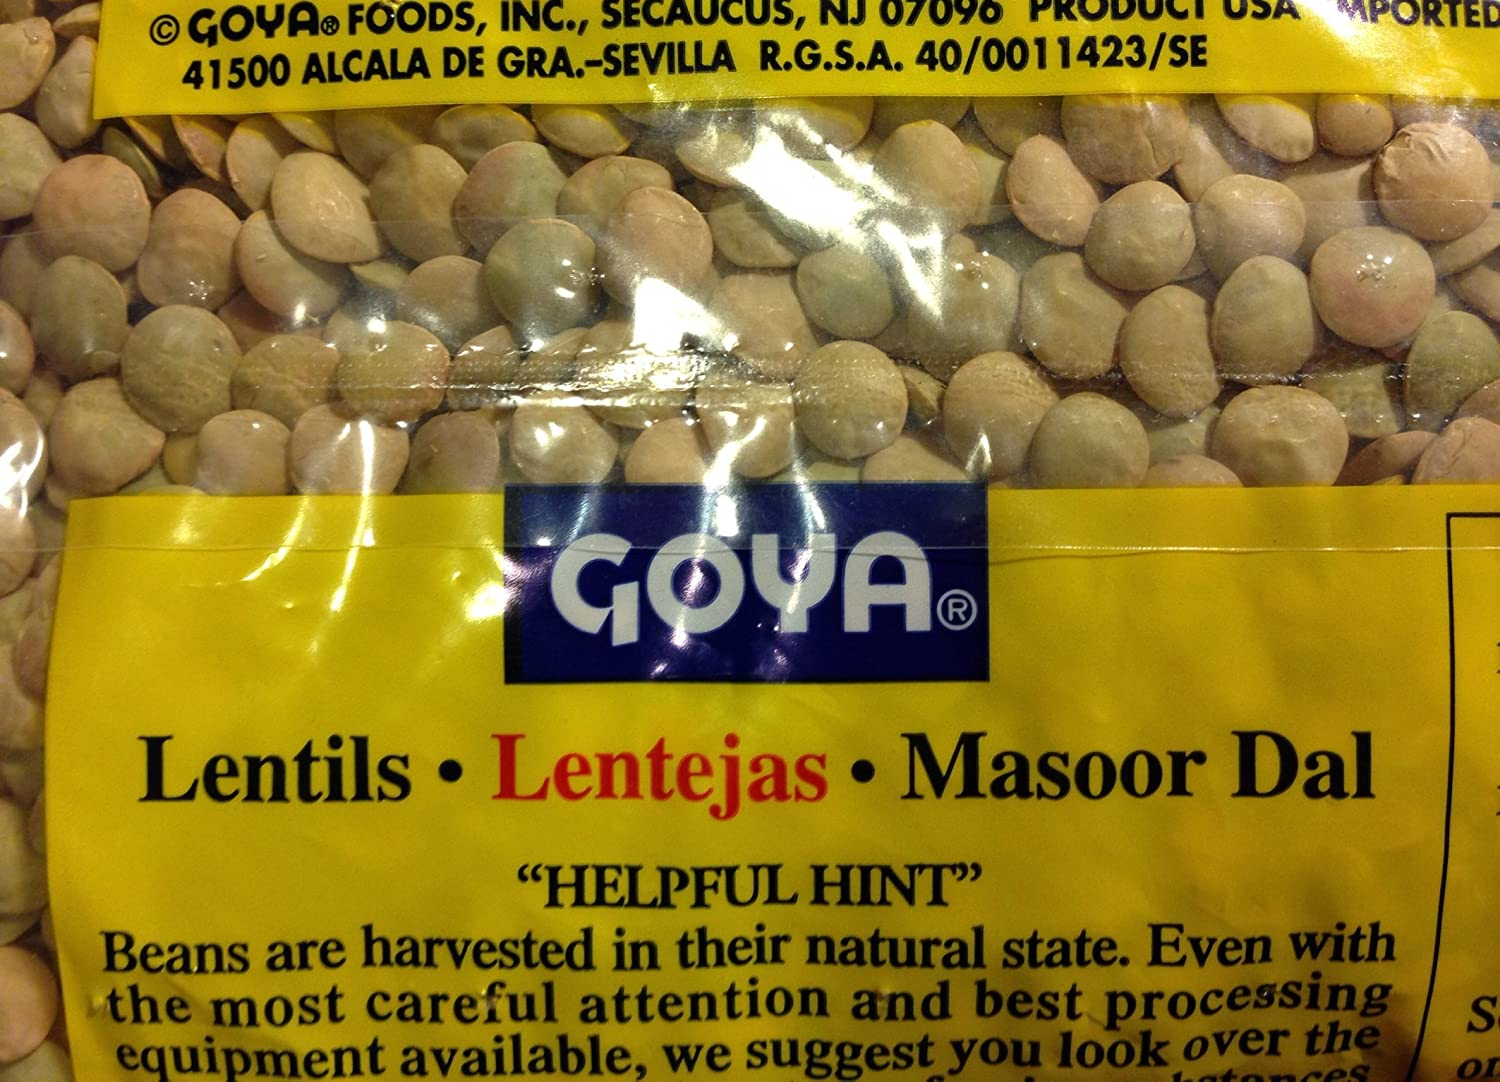 Amazon.com : Goya Lentils Dry 4 - 1 Lb Bags (4 Pack) Dried Great for Lentil Soup - 8 Grams Protein : Grocery & Gourmet Food